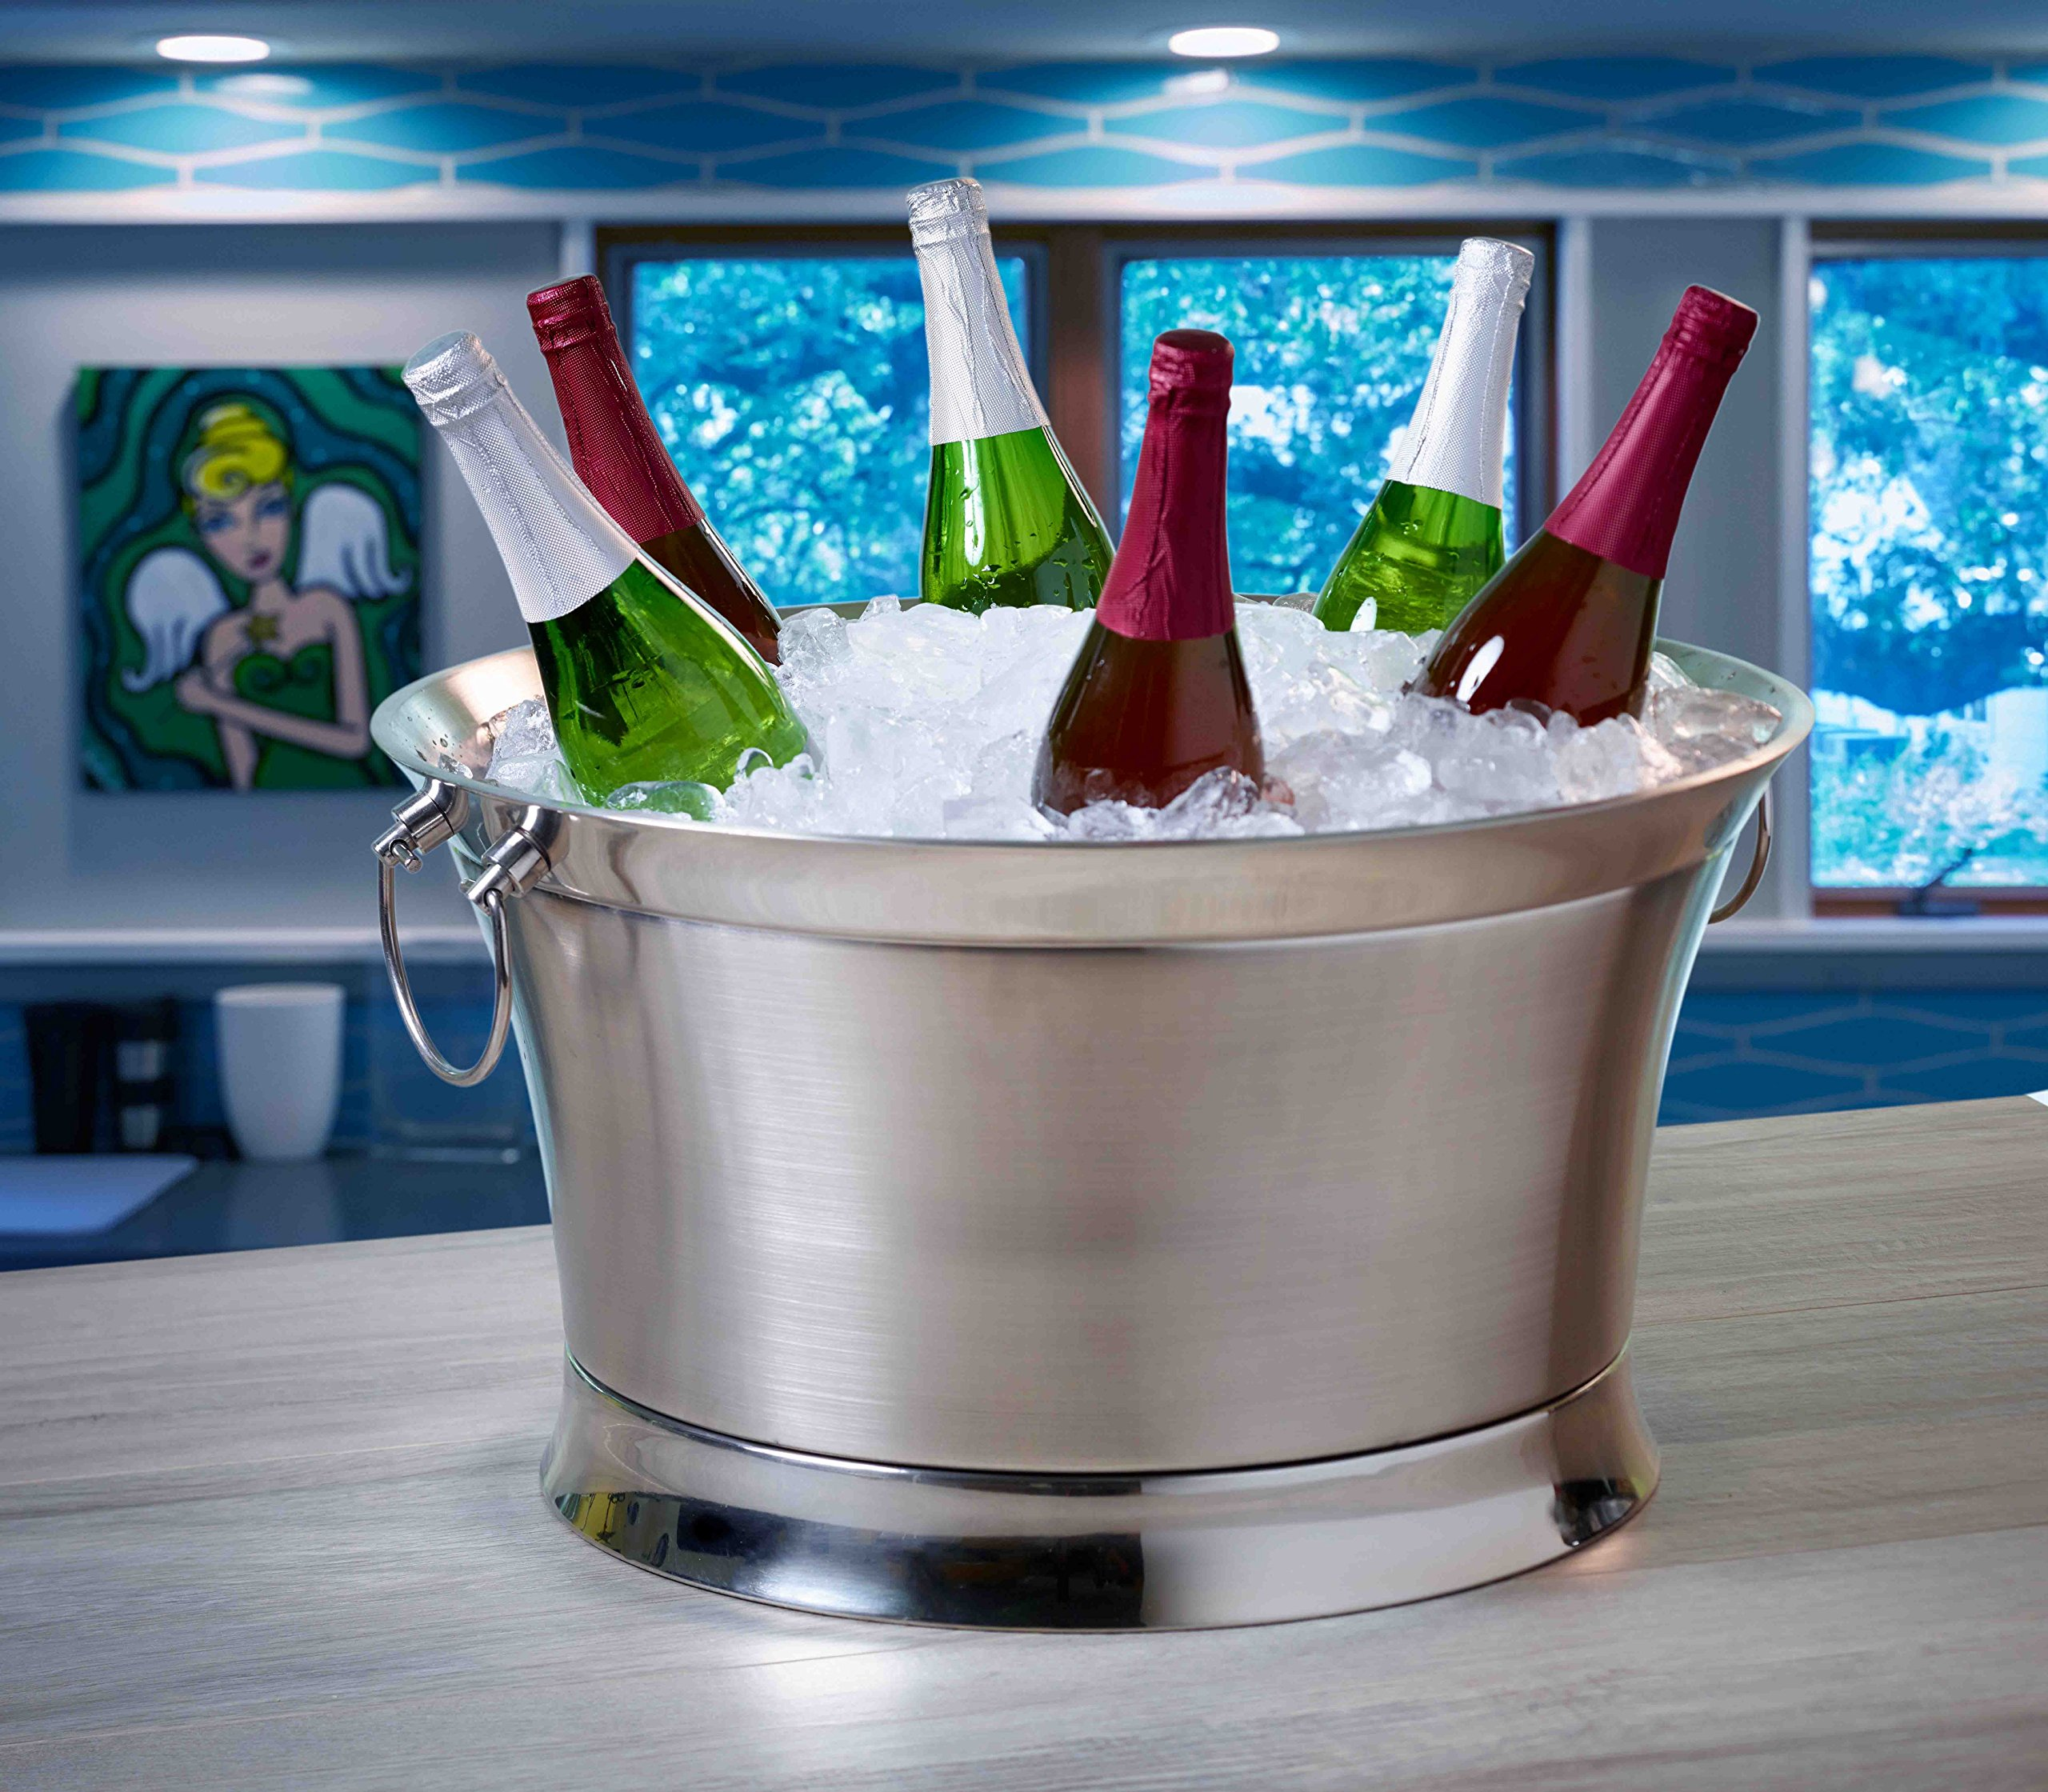 BirdRock Home Double Wall Round Beverage Tub | Stainless Steel | Large by BirdRock Home (Image #1)